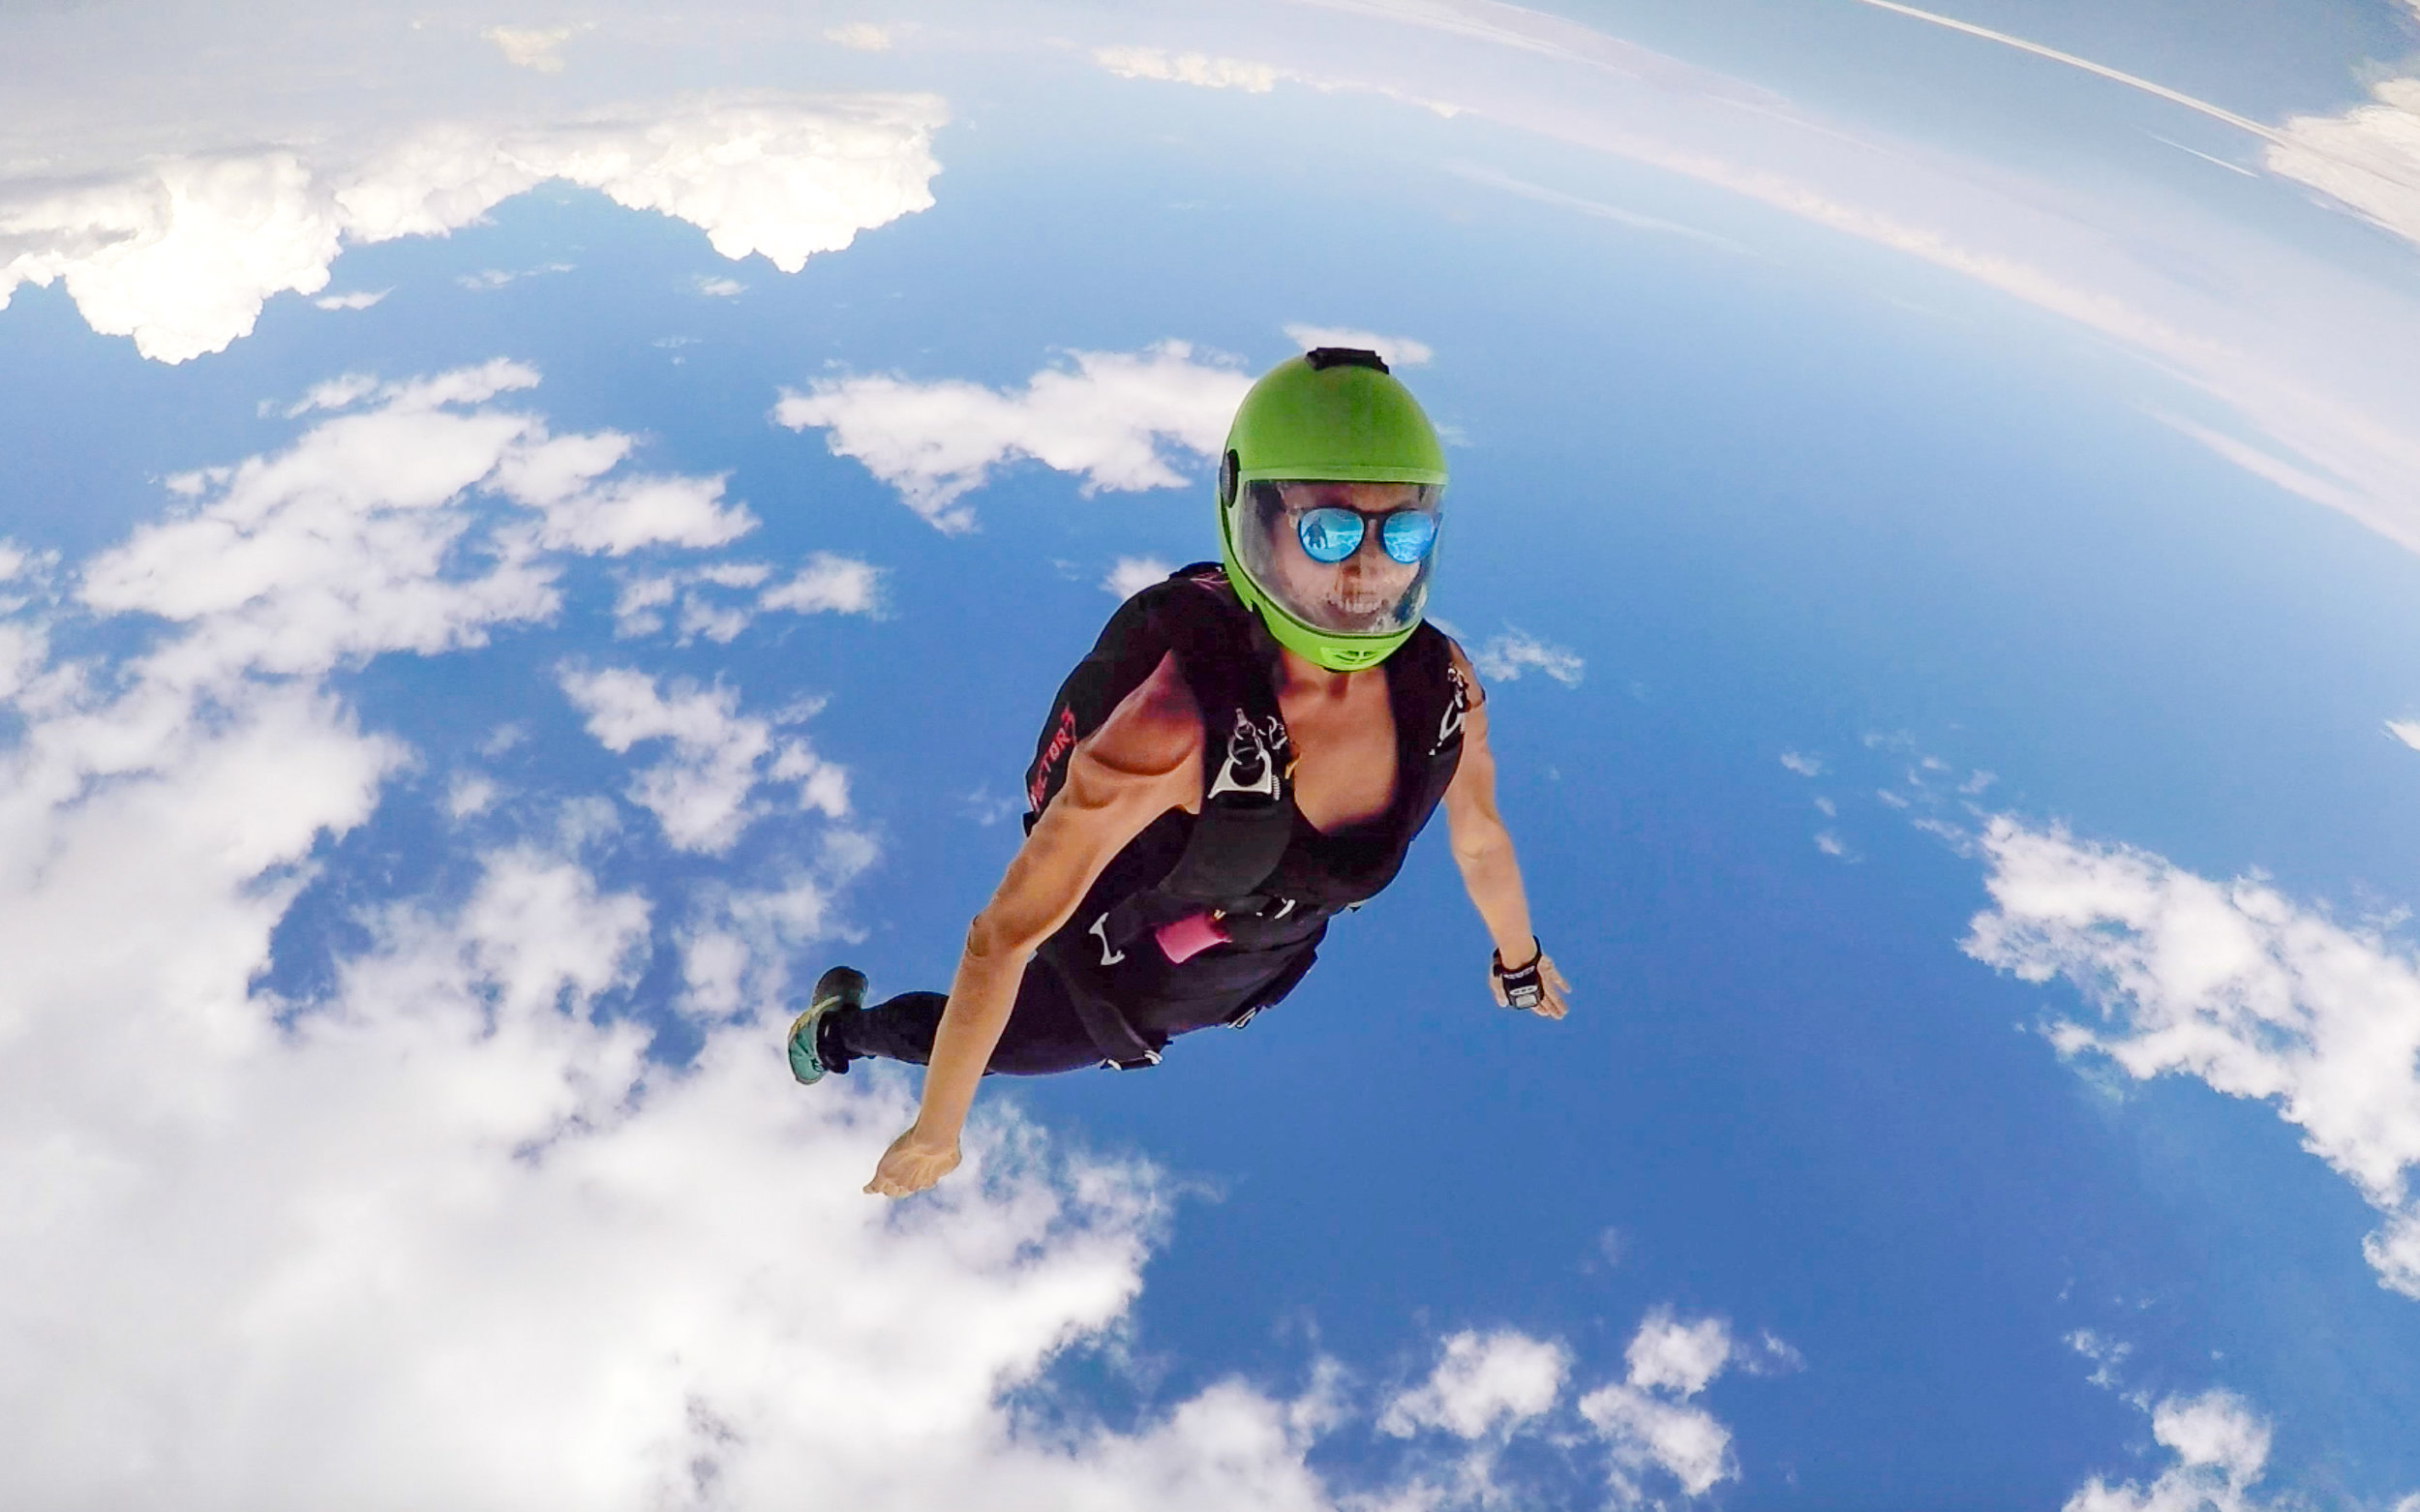 5 Reasons to Skydive (That Have Nothing to Do with Adrenaline